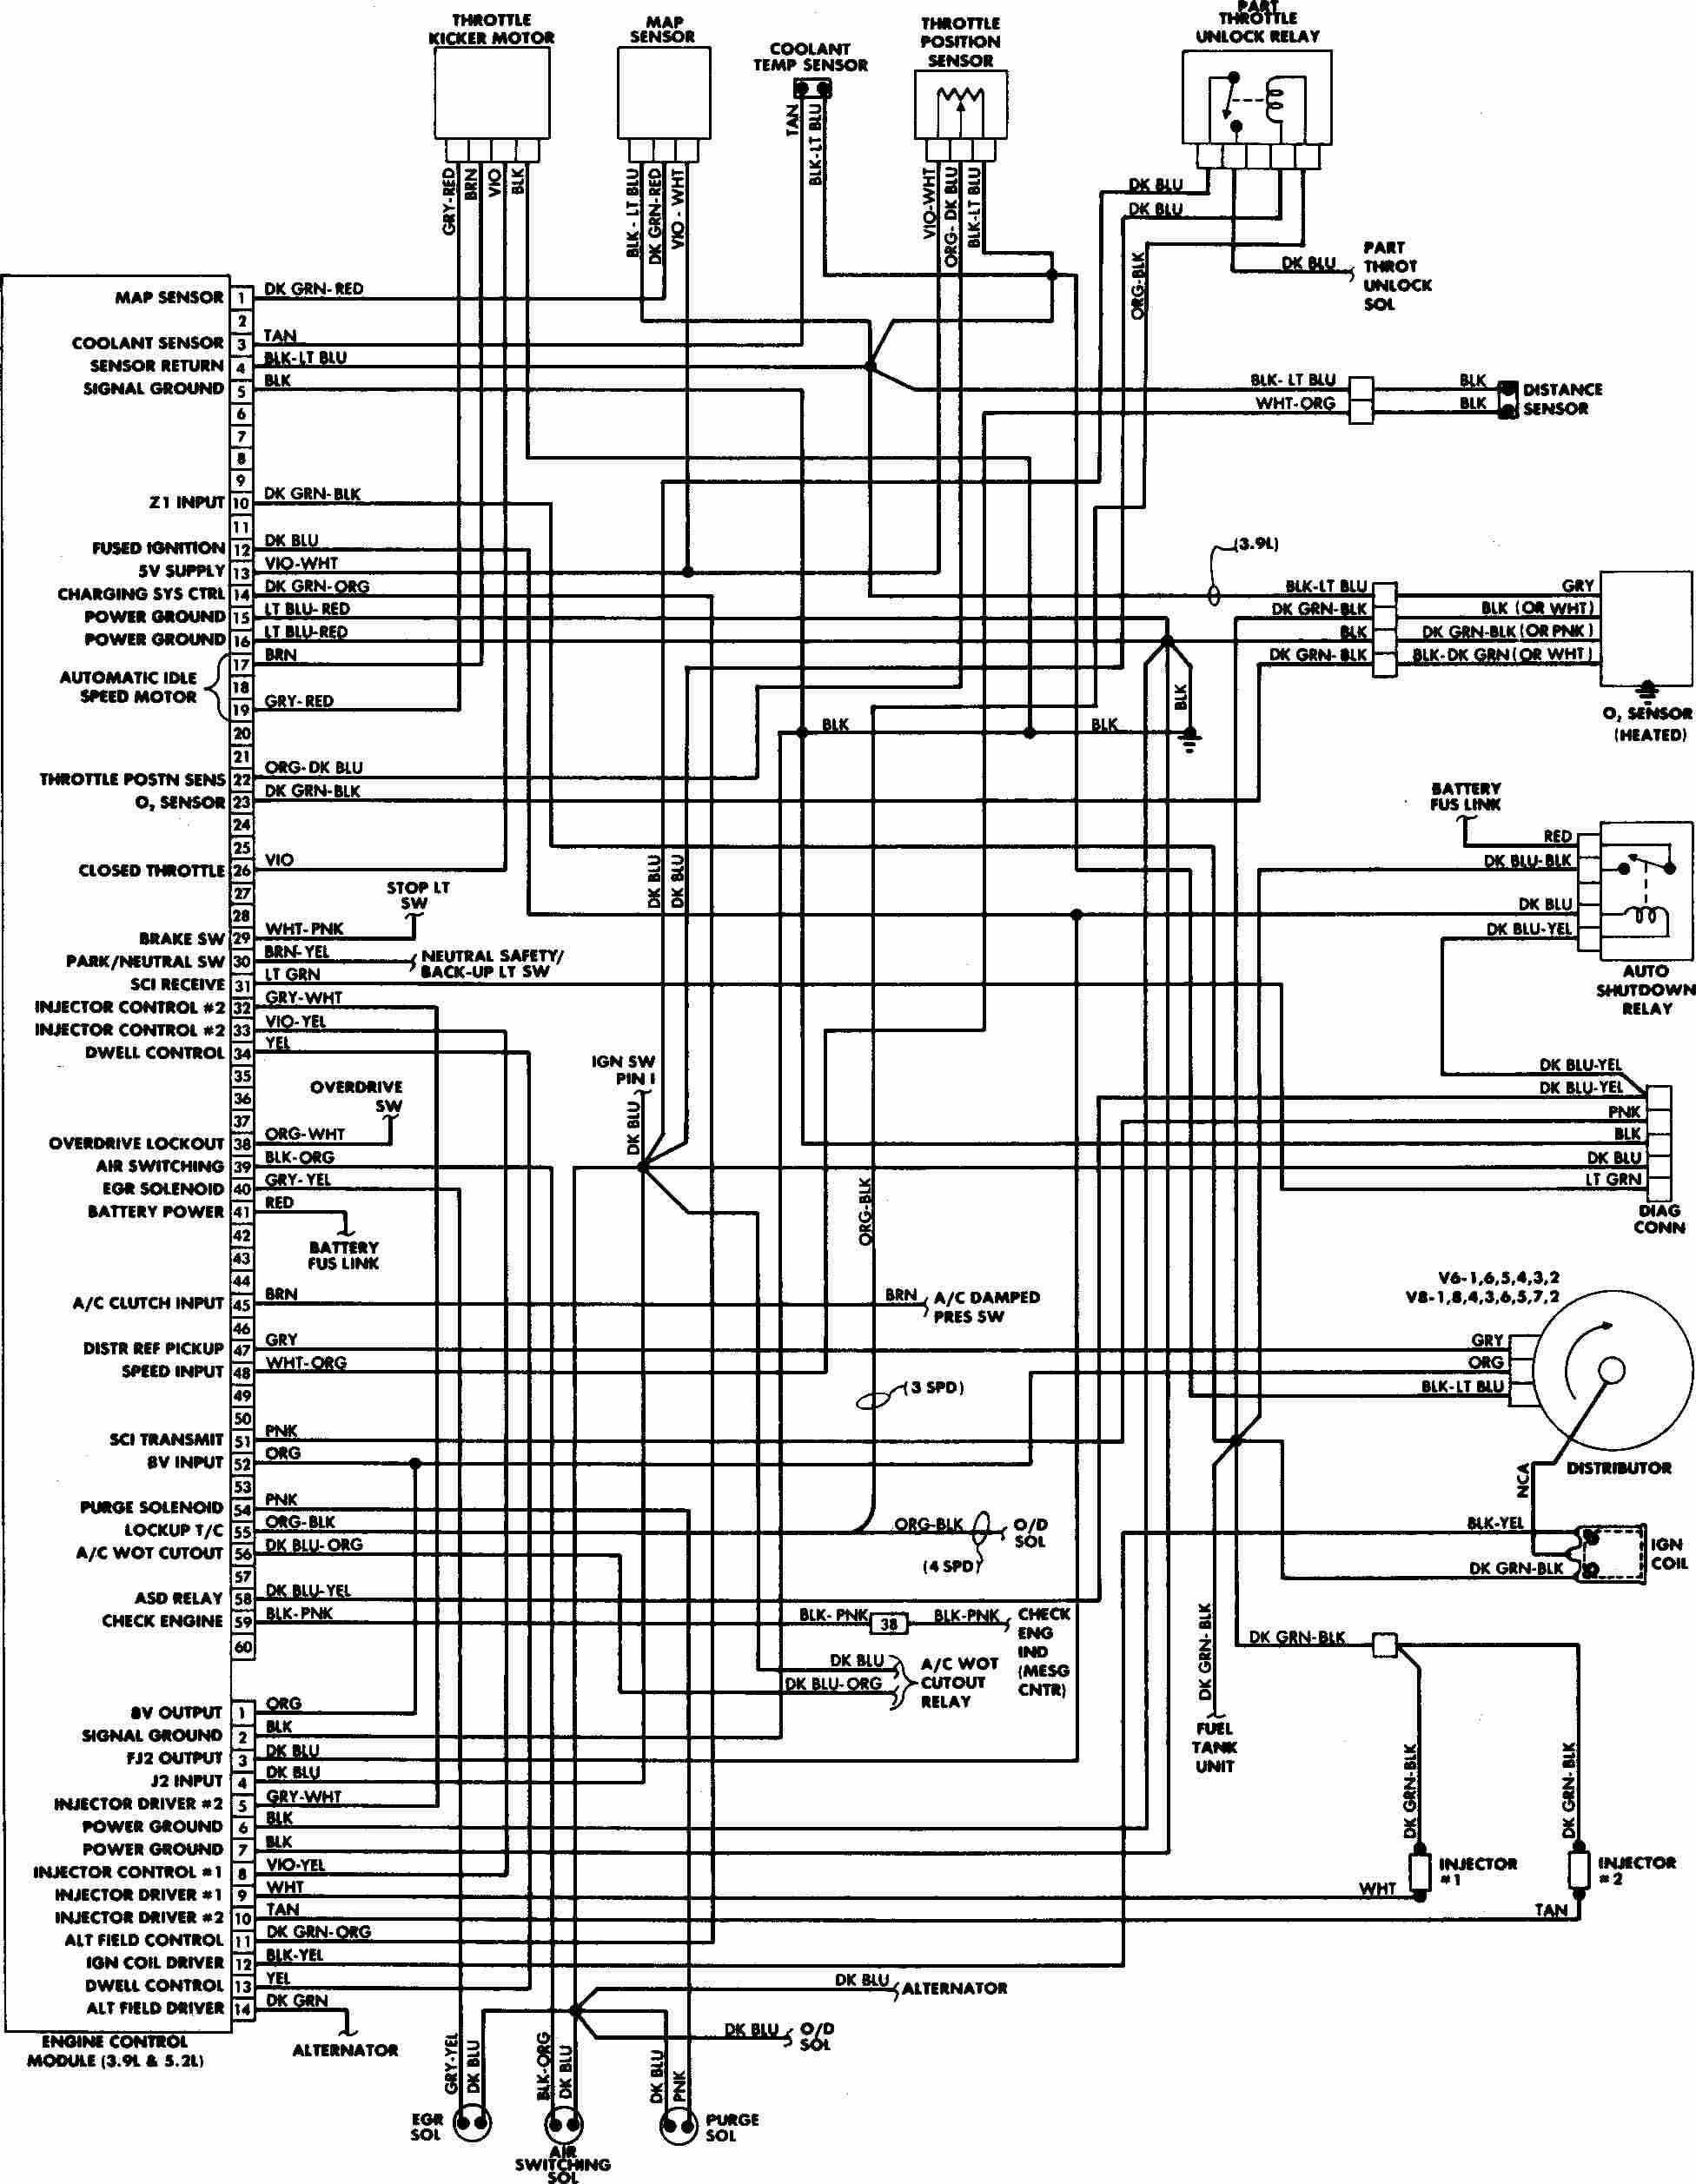 neon alternator wiring diagram free download wiring diagram wire rh linxglobal co 2001 Dodge Durango Engine Diagram 2005 Dodge Durango Wiring Diagram